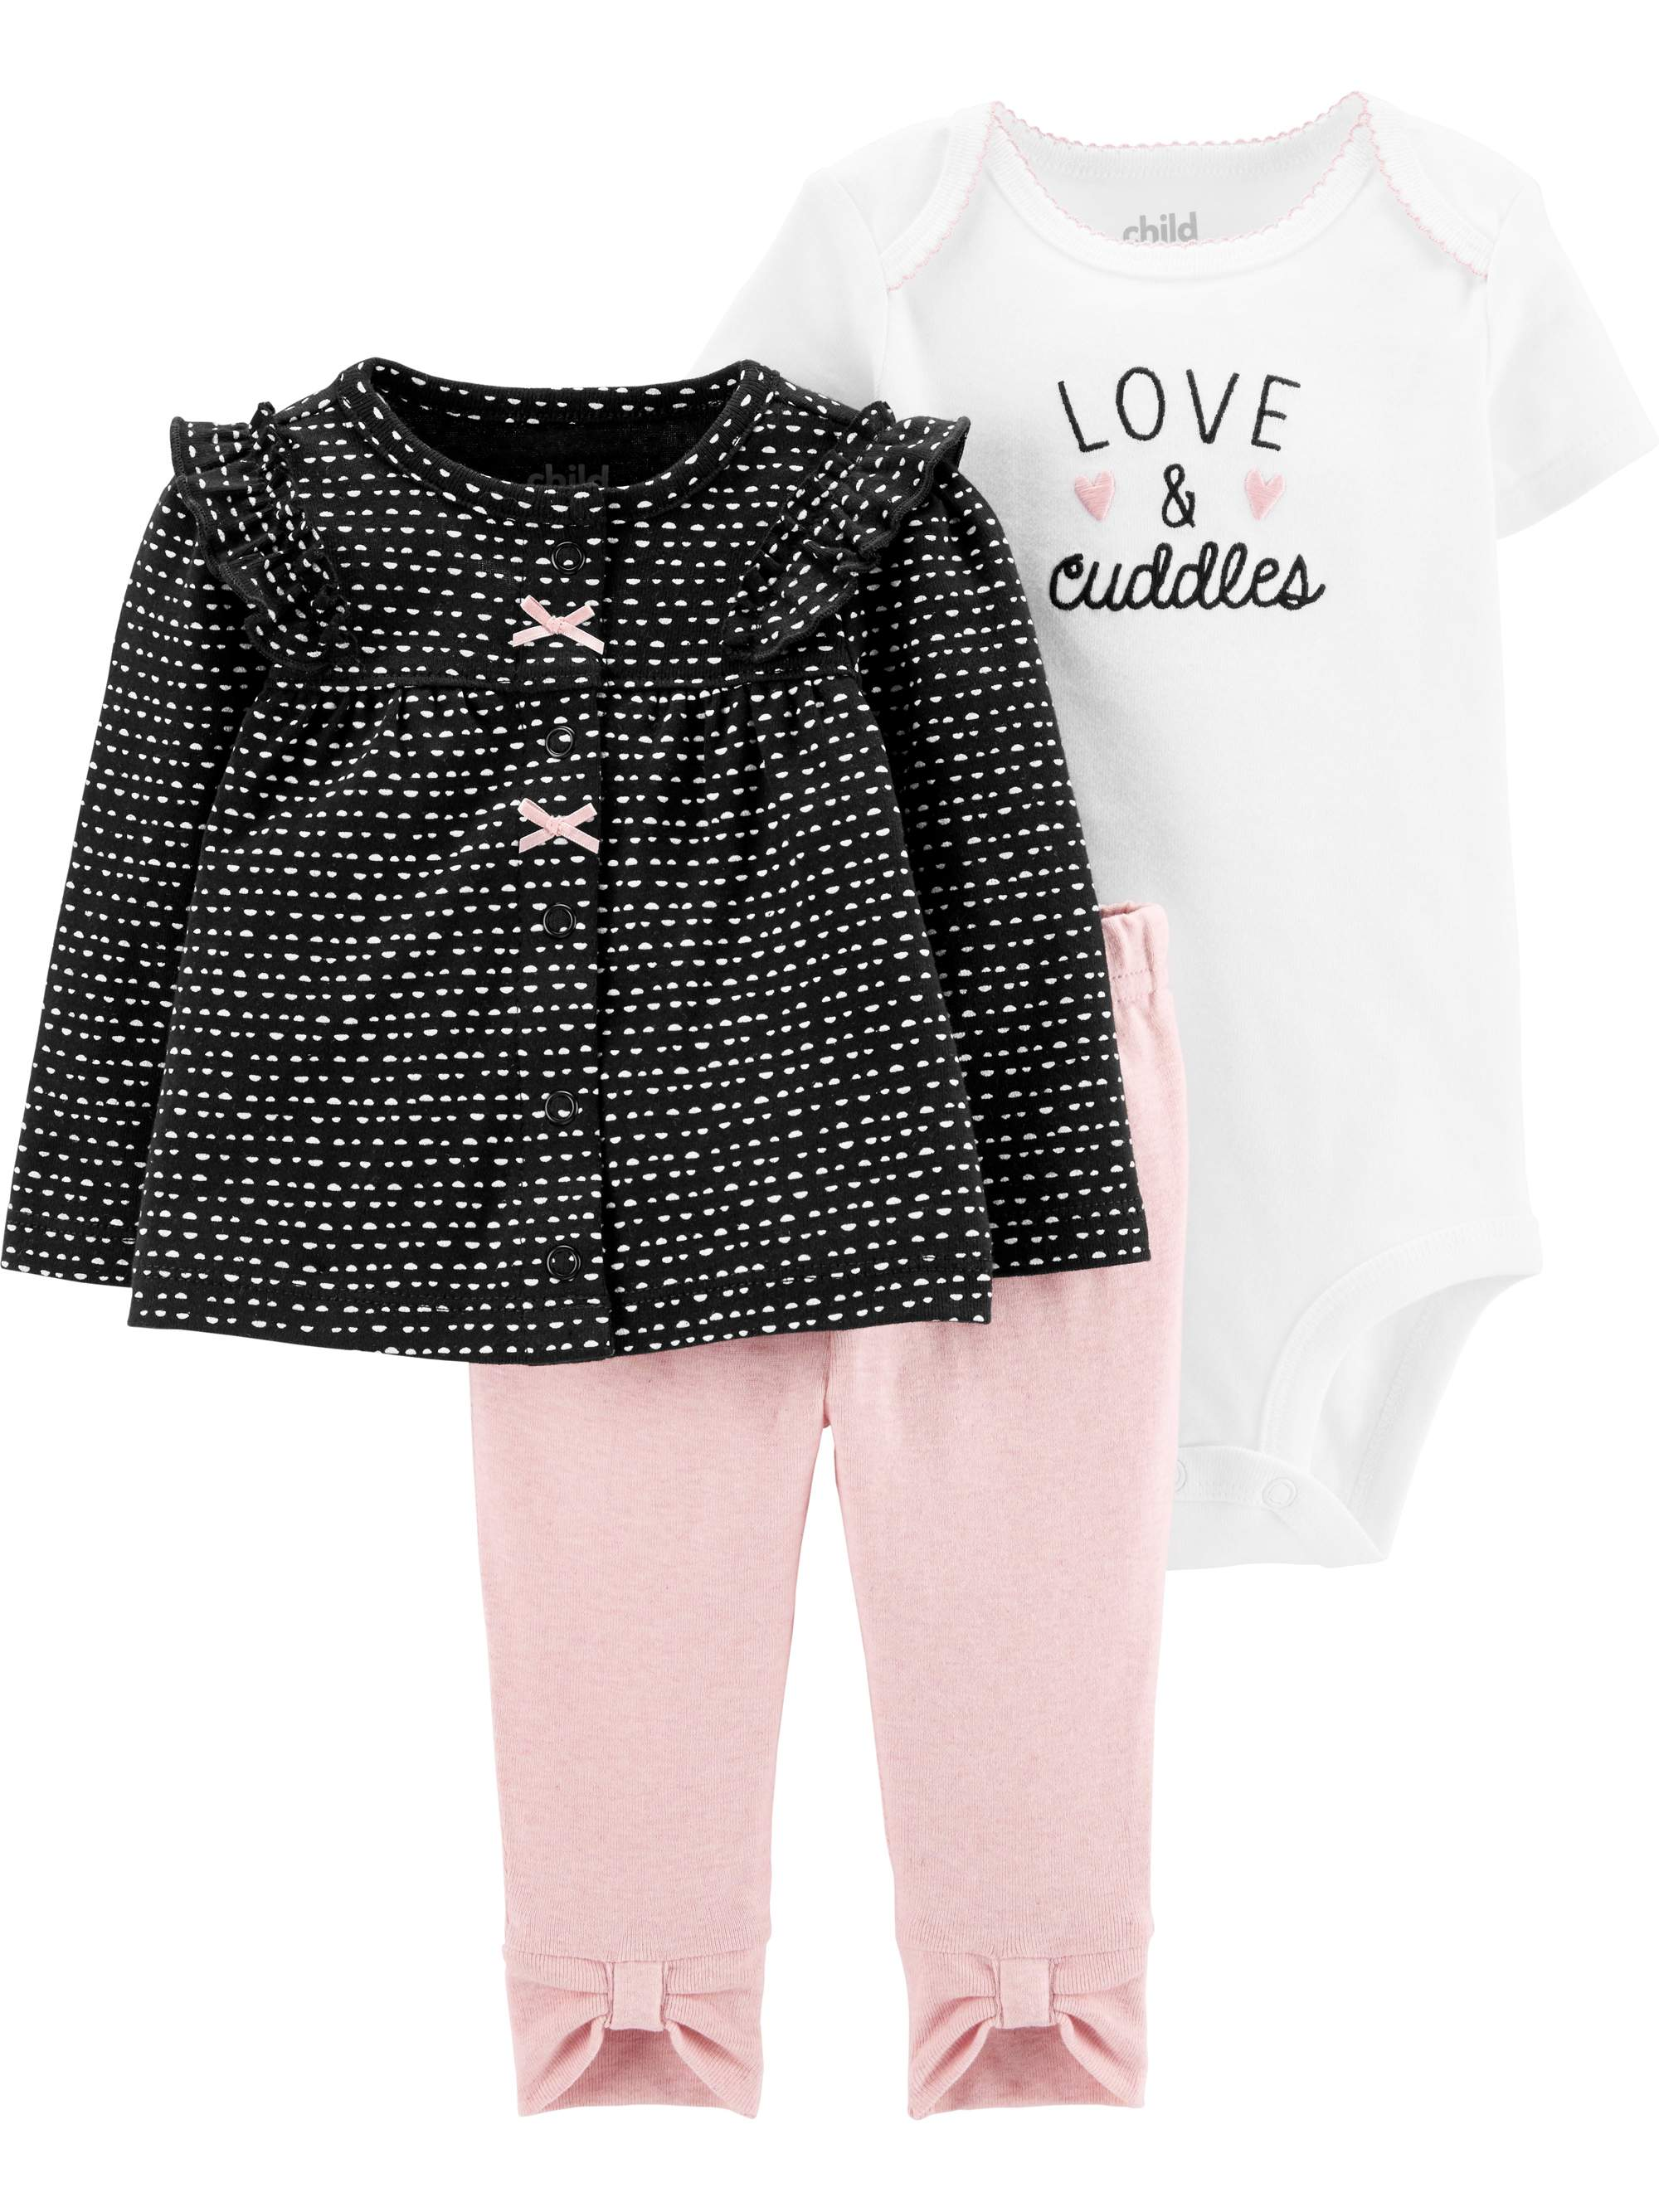 Child Of Mine By Carter's Baby Girl Cardigan Jacket, Short Sleeve Bodysuit & Bow Leggings, 3pc Outfit Set